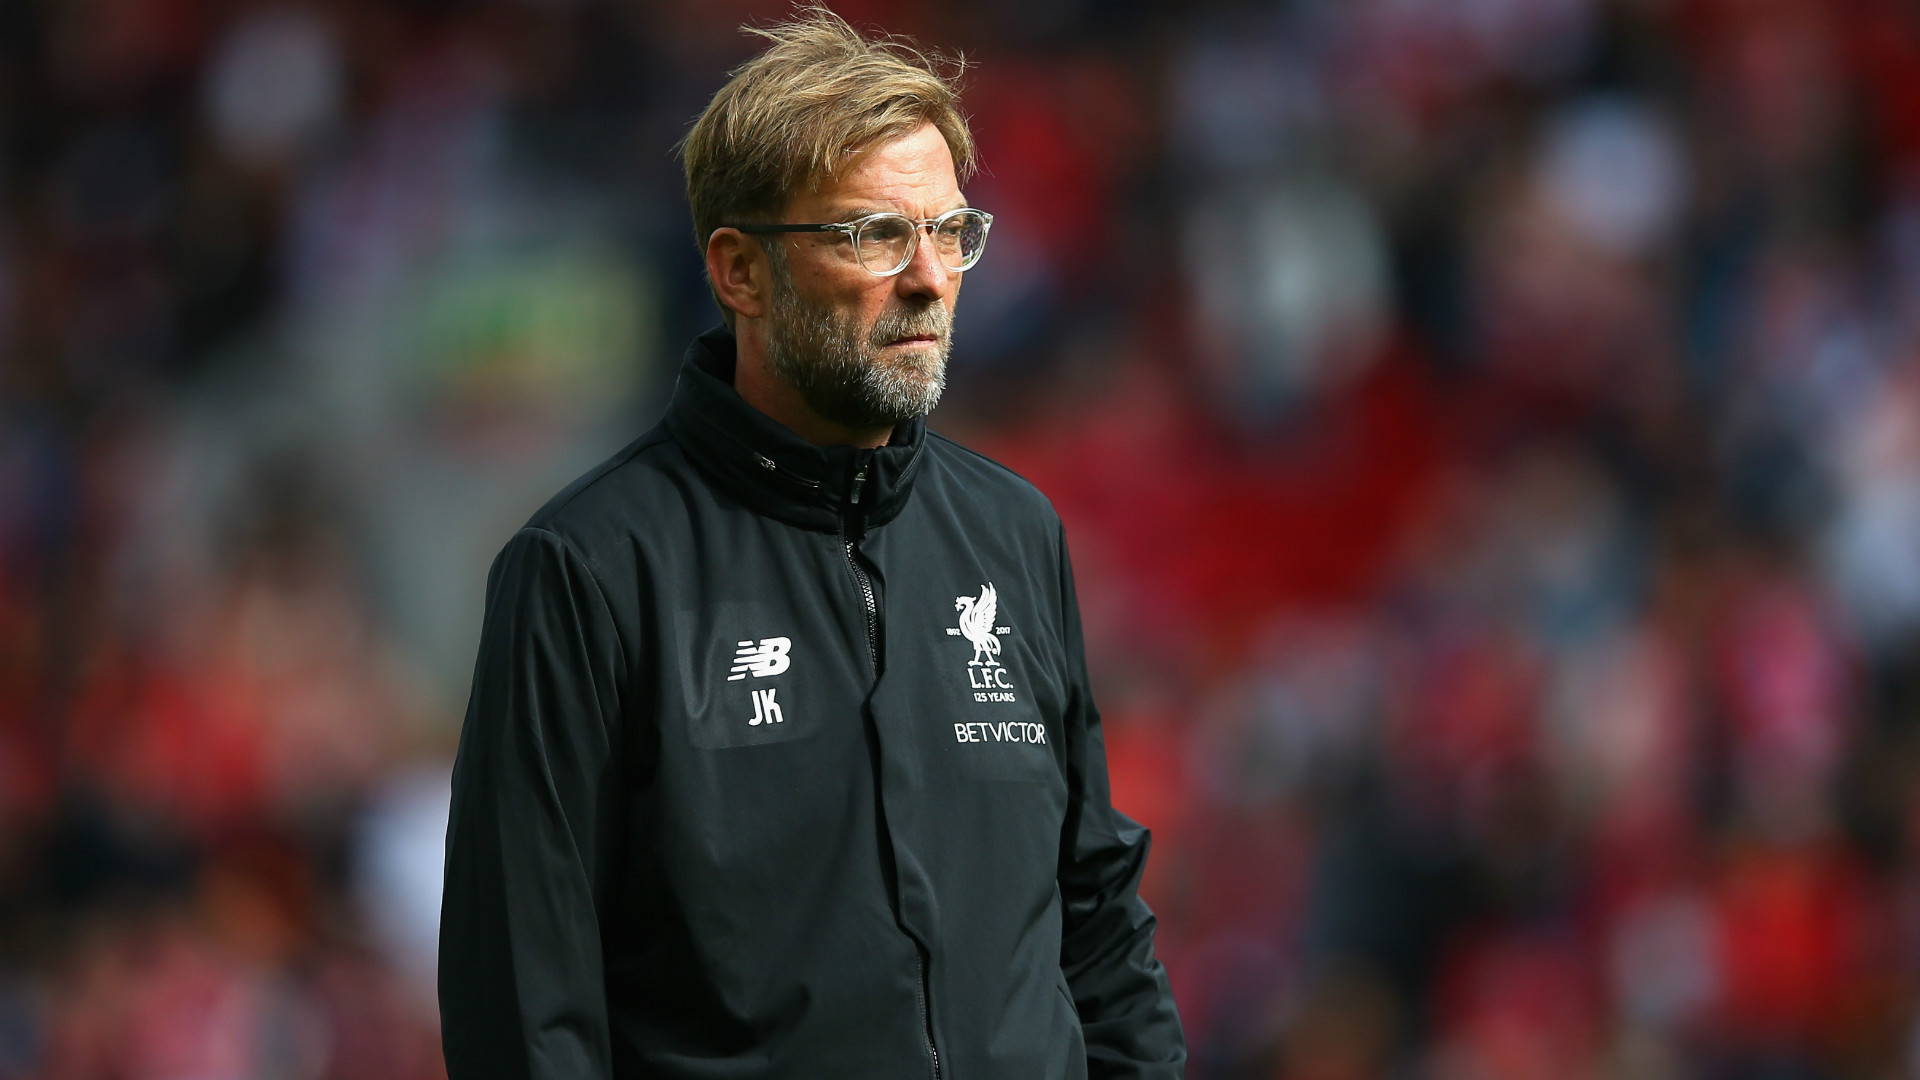 Leicester v Liverpool: Jurgen Klopp confirms 3 starting players